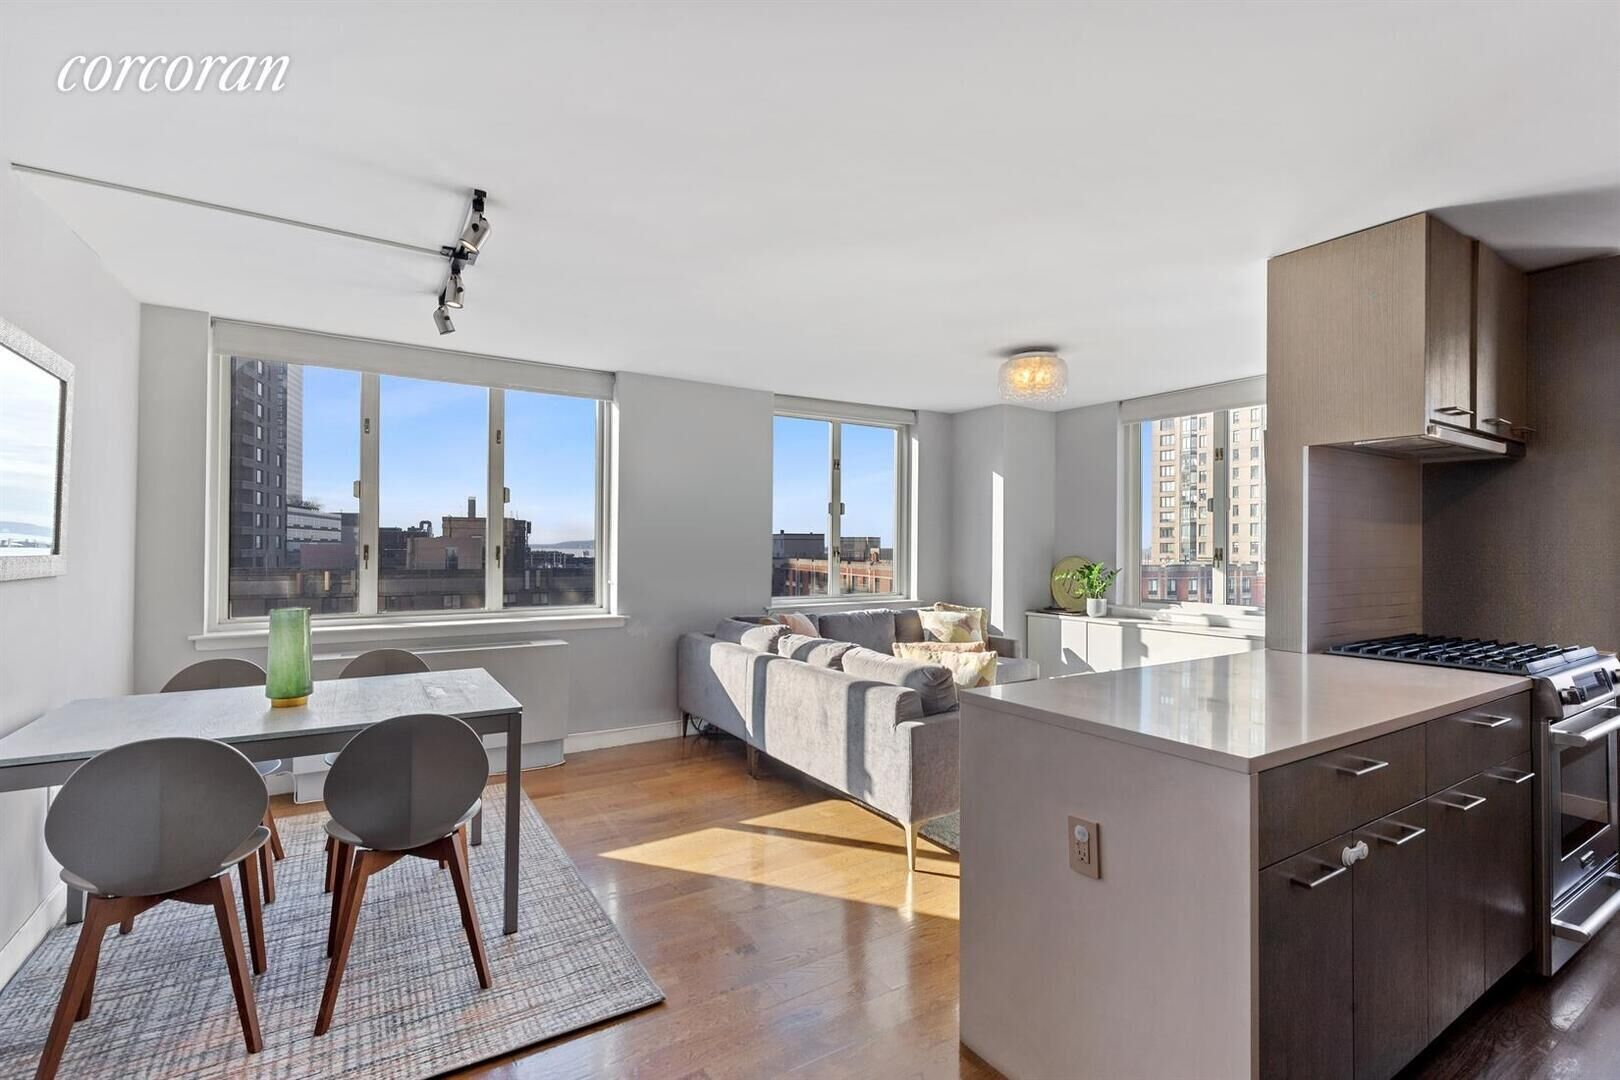 Apartment for sale at 225 Rector Place, Apt 11N